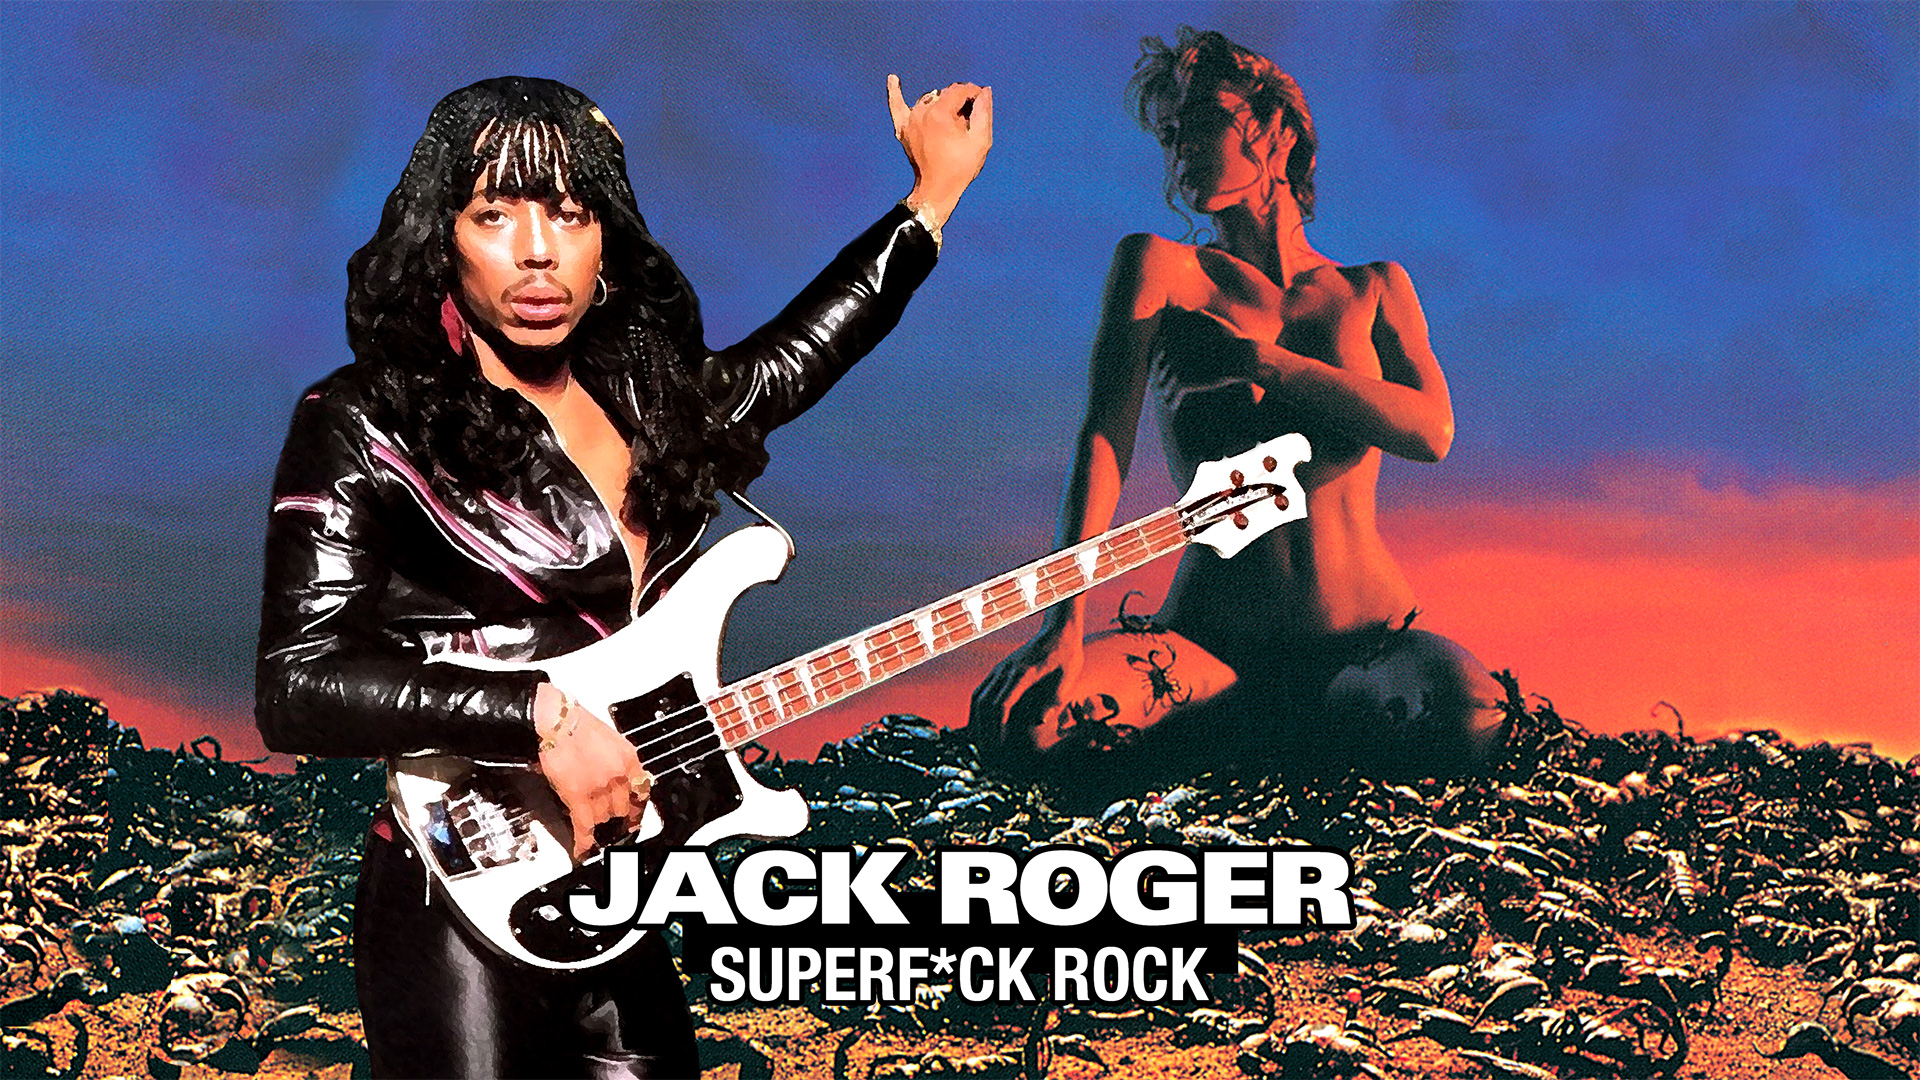 05. Superf*ck Rock (Scorpions, Rick James, Peaches, Yellow Claw)